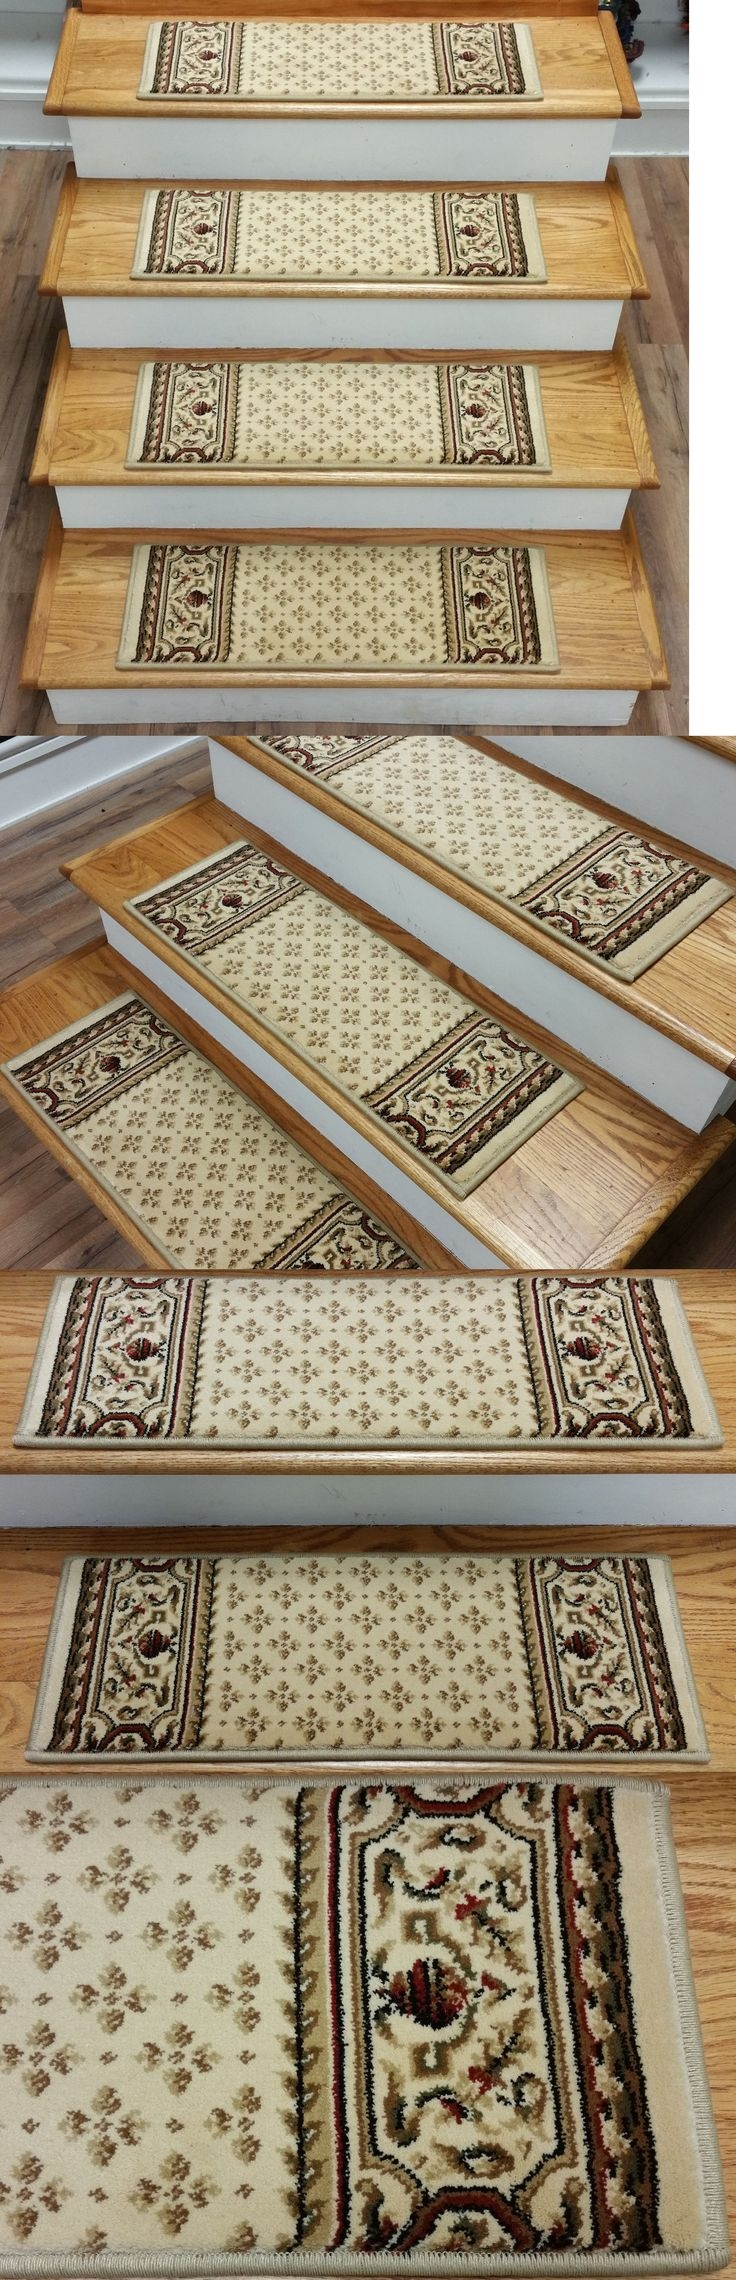 Best 25 Traditional Stair Tread Rugs Ideas Only On Pinterest Within Rectangular Stair Tread Rugs (#4 of 20)